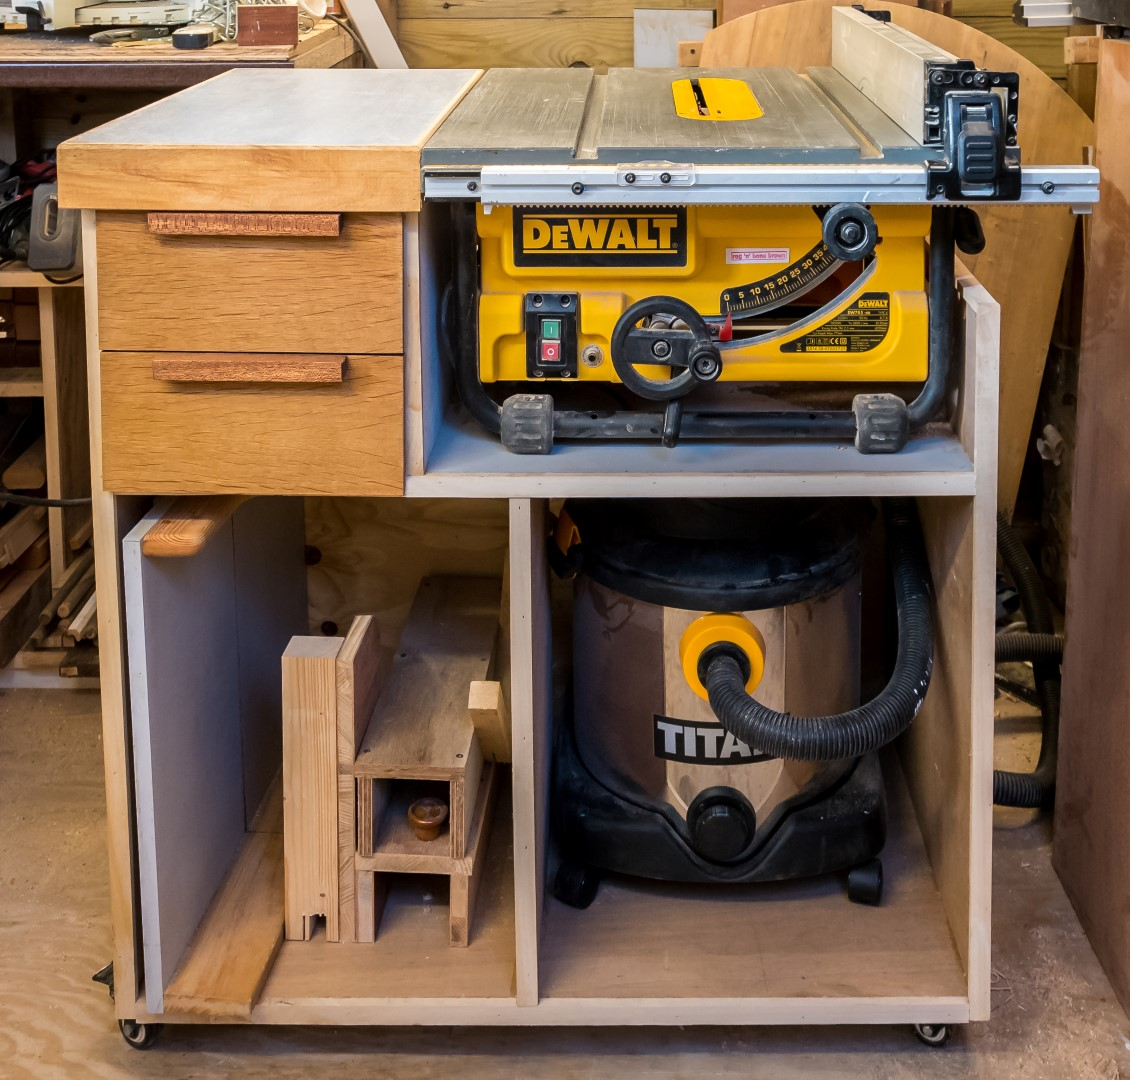 Mobile Tablesaw Stand For Dewalt Dw745 Part 1 Of 2 Workshop Re Model Episode 2 Rag 39 N